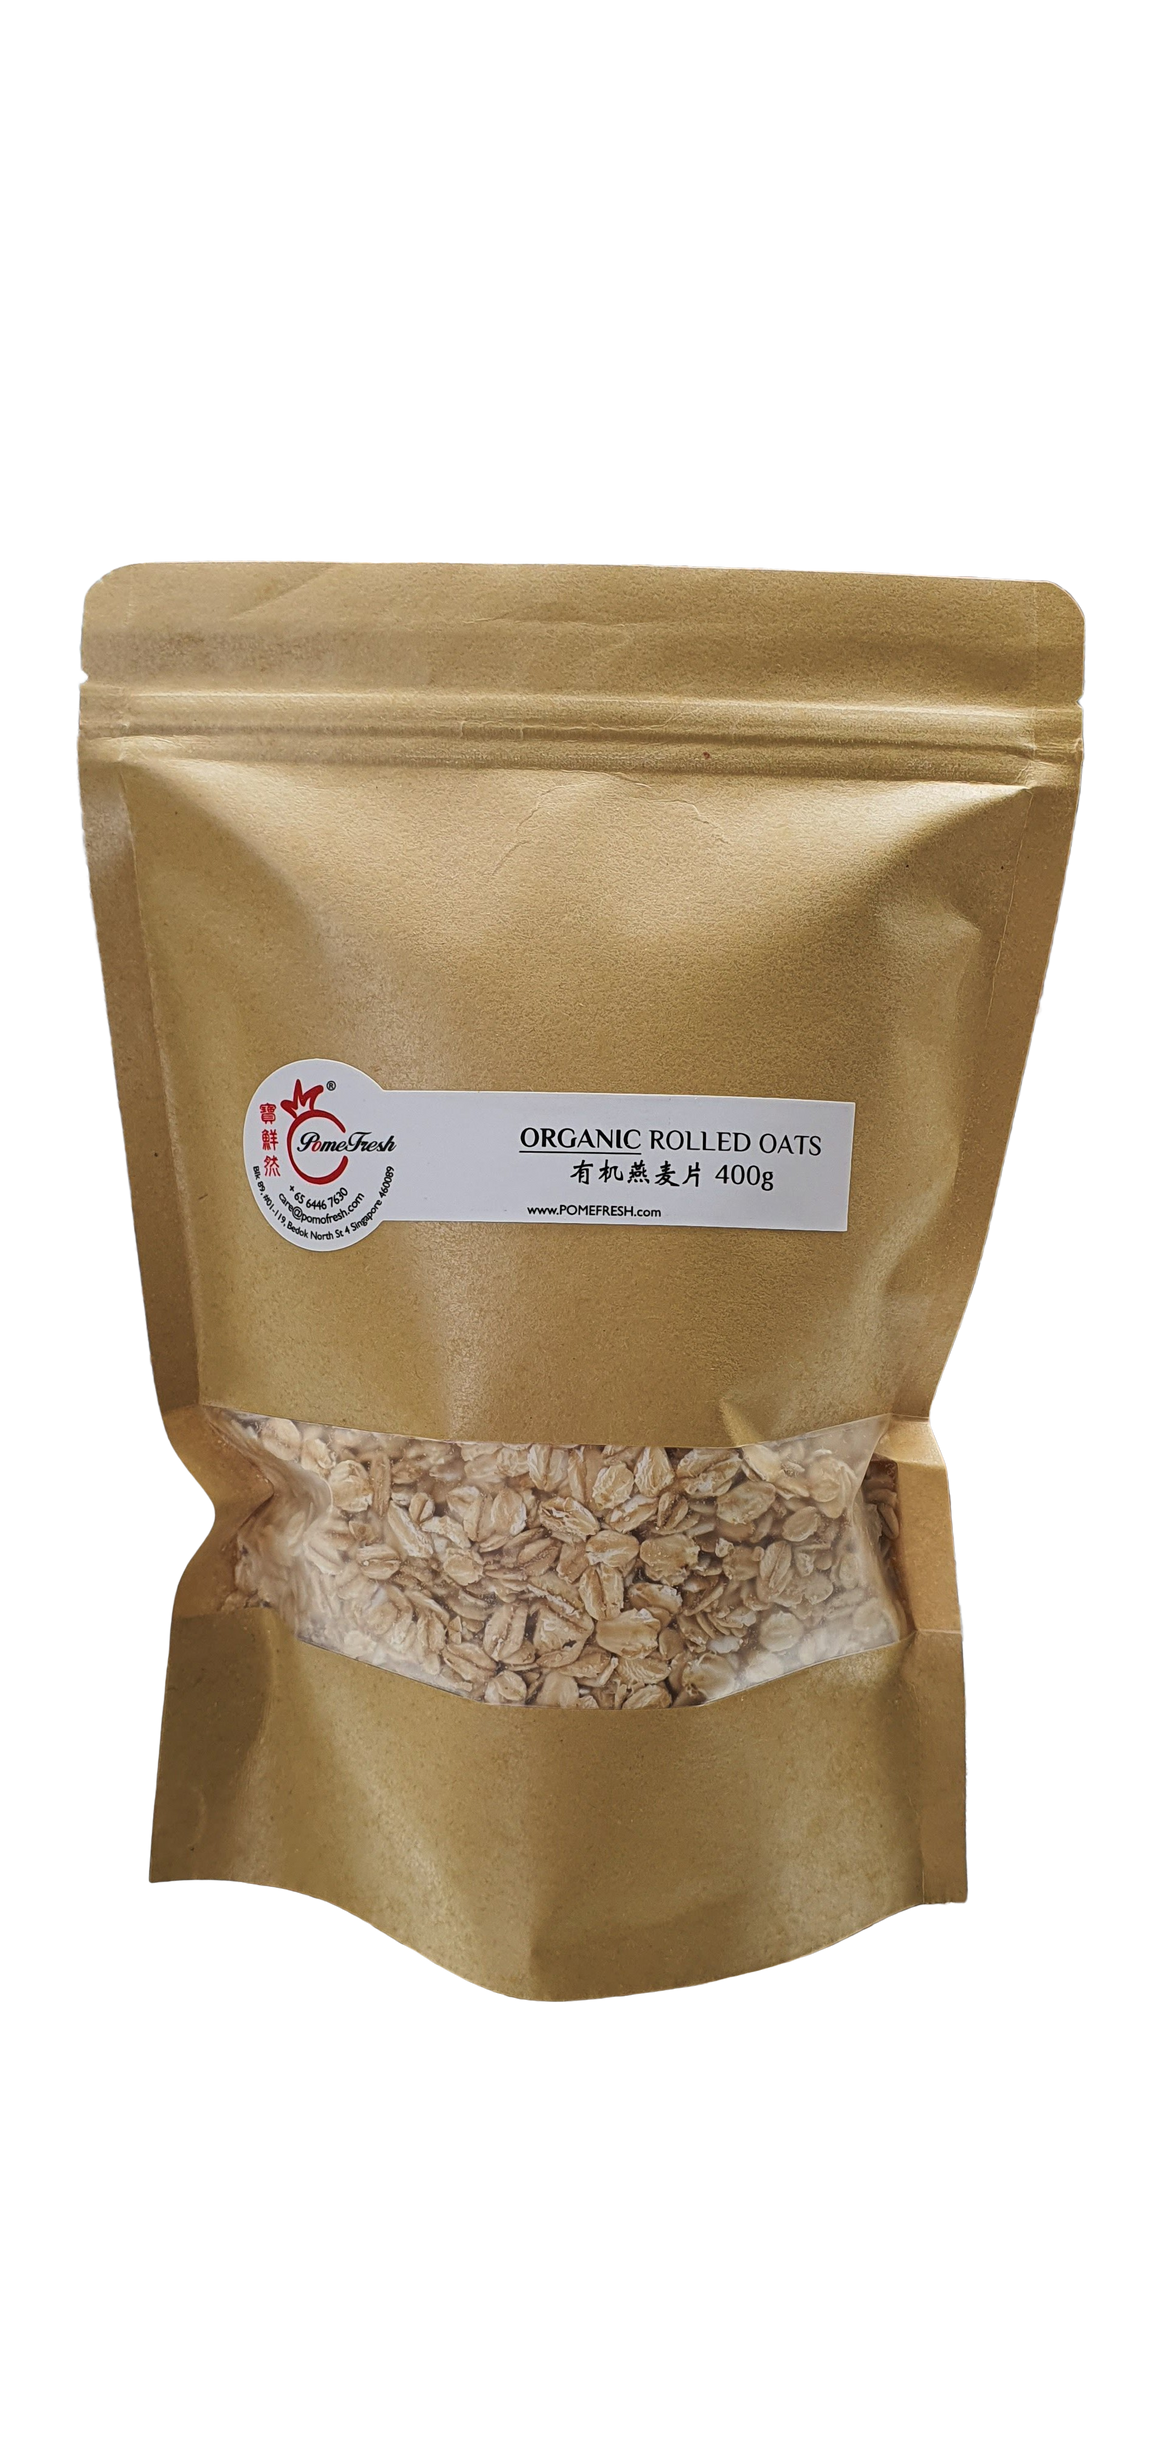 ORGANIC REGULAR ROLLED OATS 有机燕麦片 400g